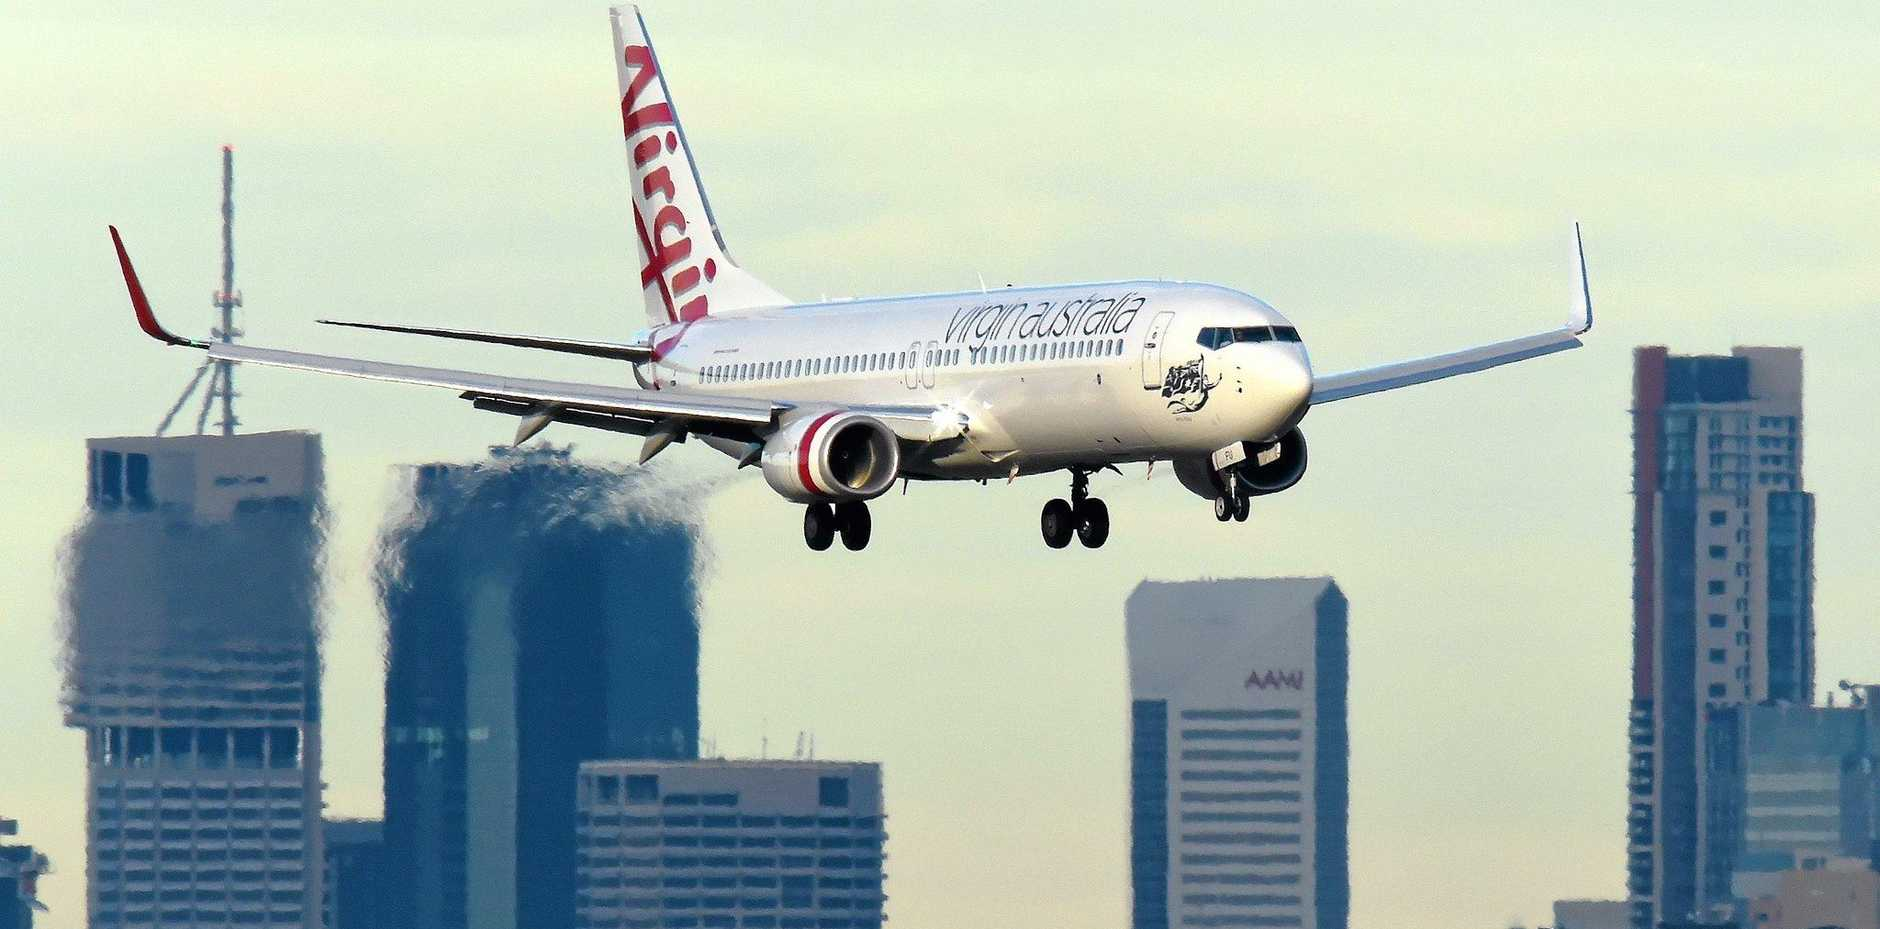 A Virgin Australia plane is seen on approach into Brisbane airport,